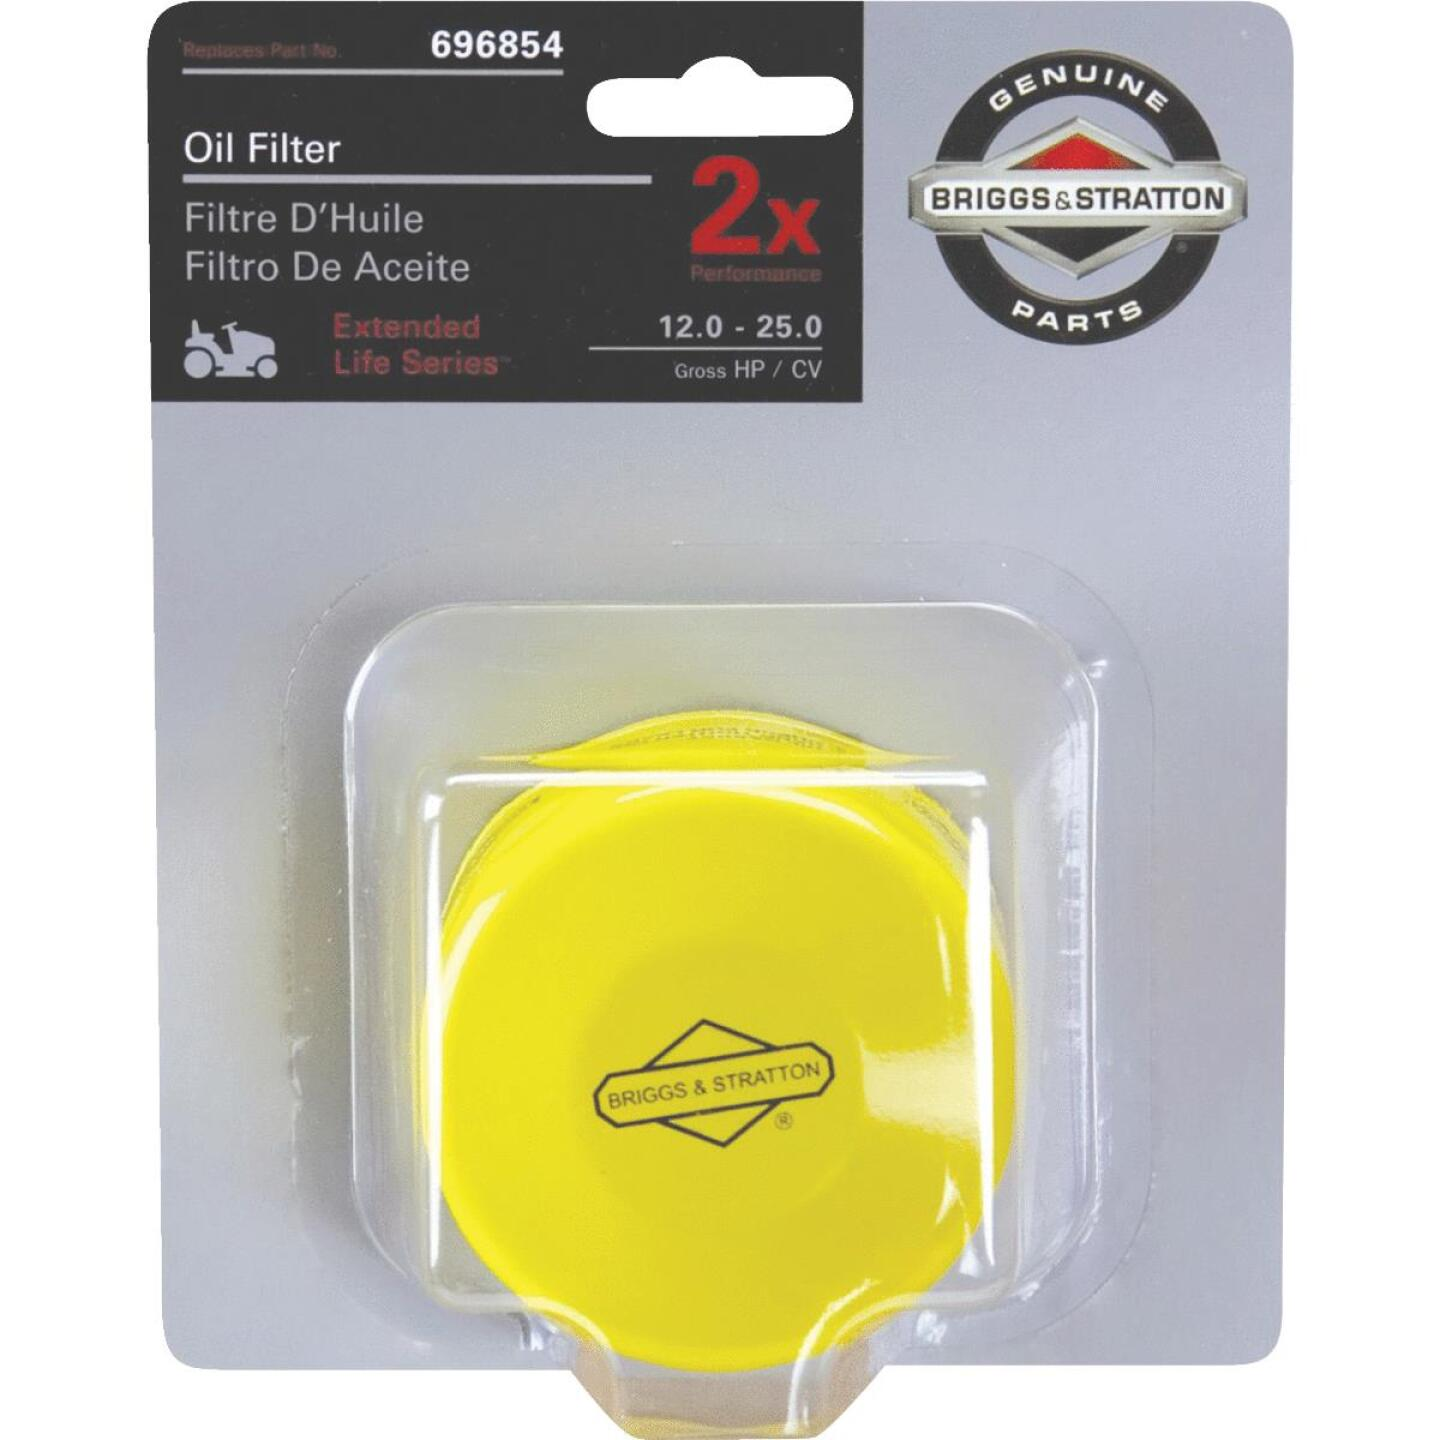 Briggs & Stratton 696854 Extended Life Series Oil Filter Image 1